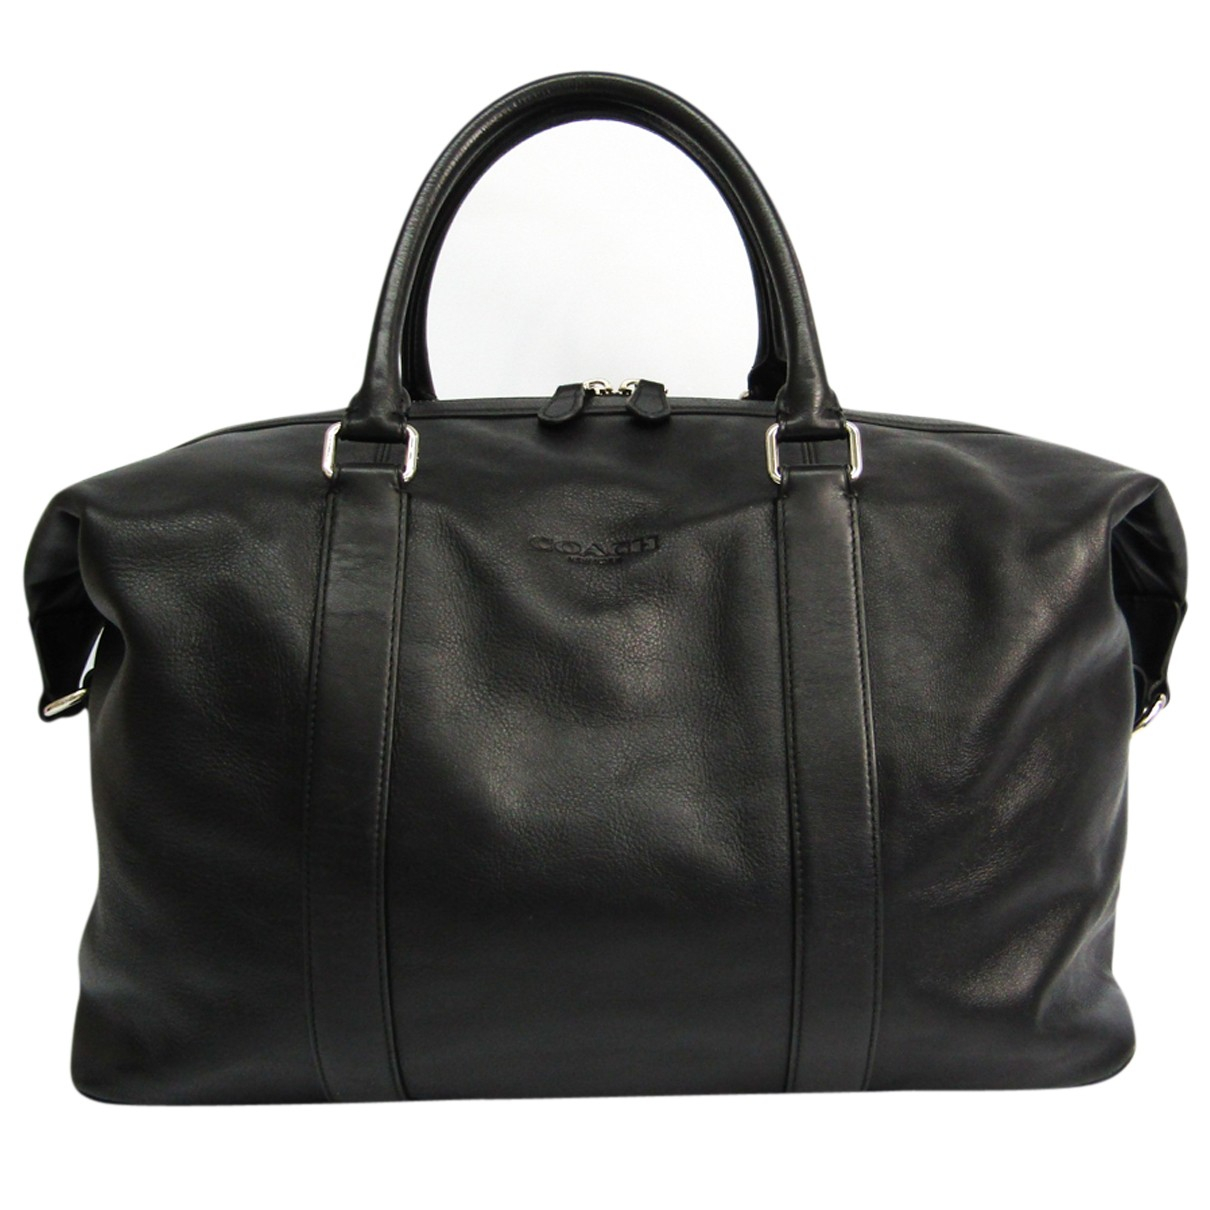 Coach N Black Leather Travel bag for Women N